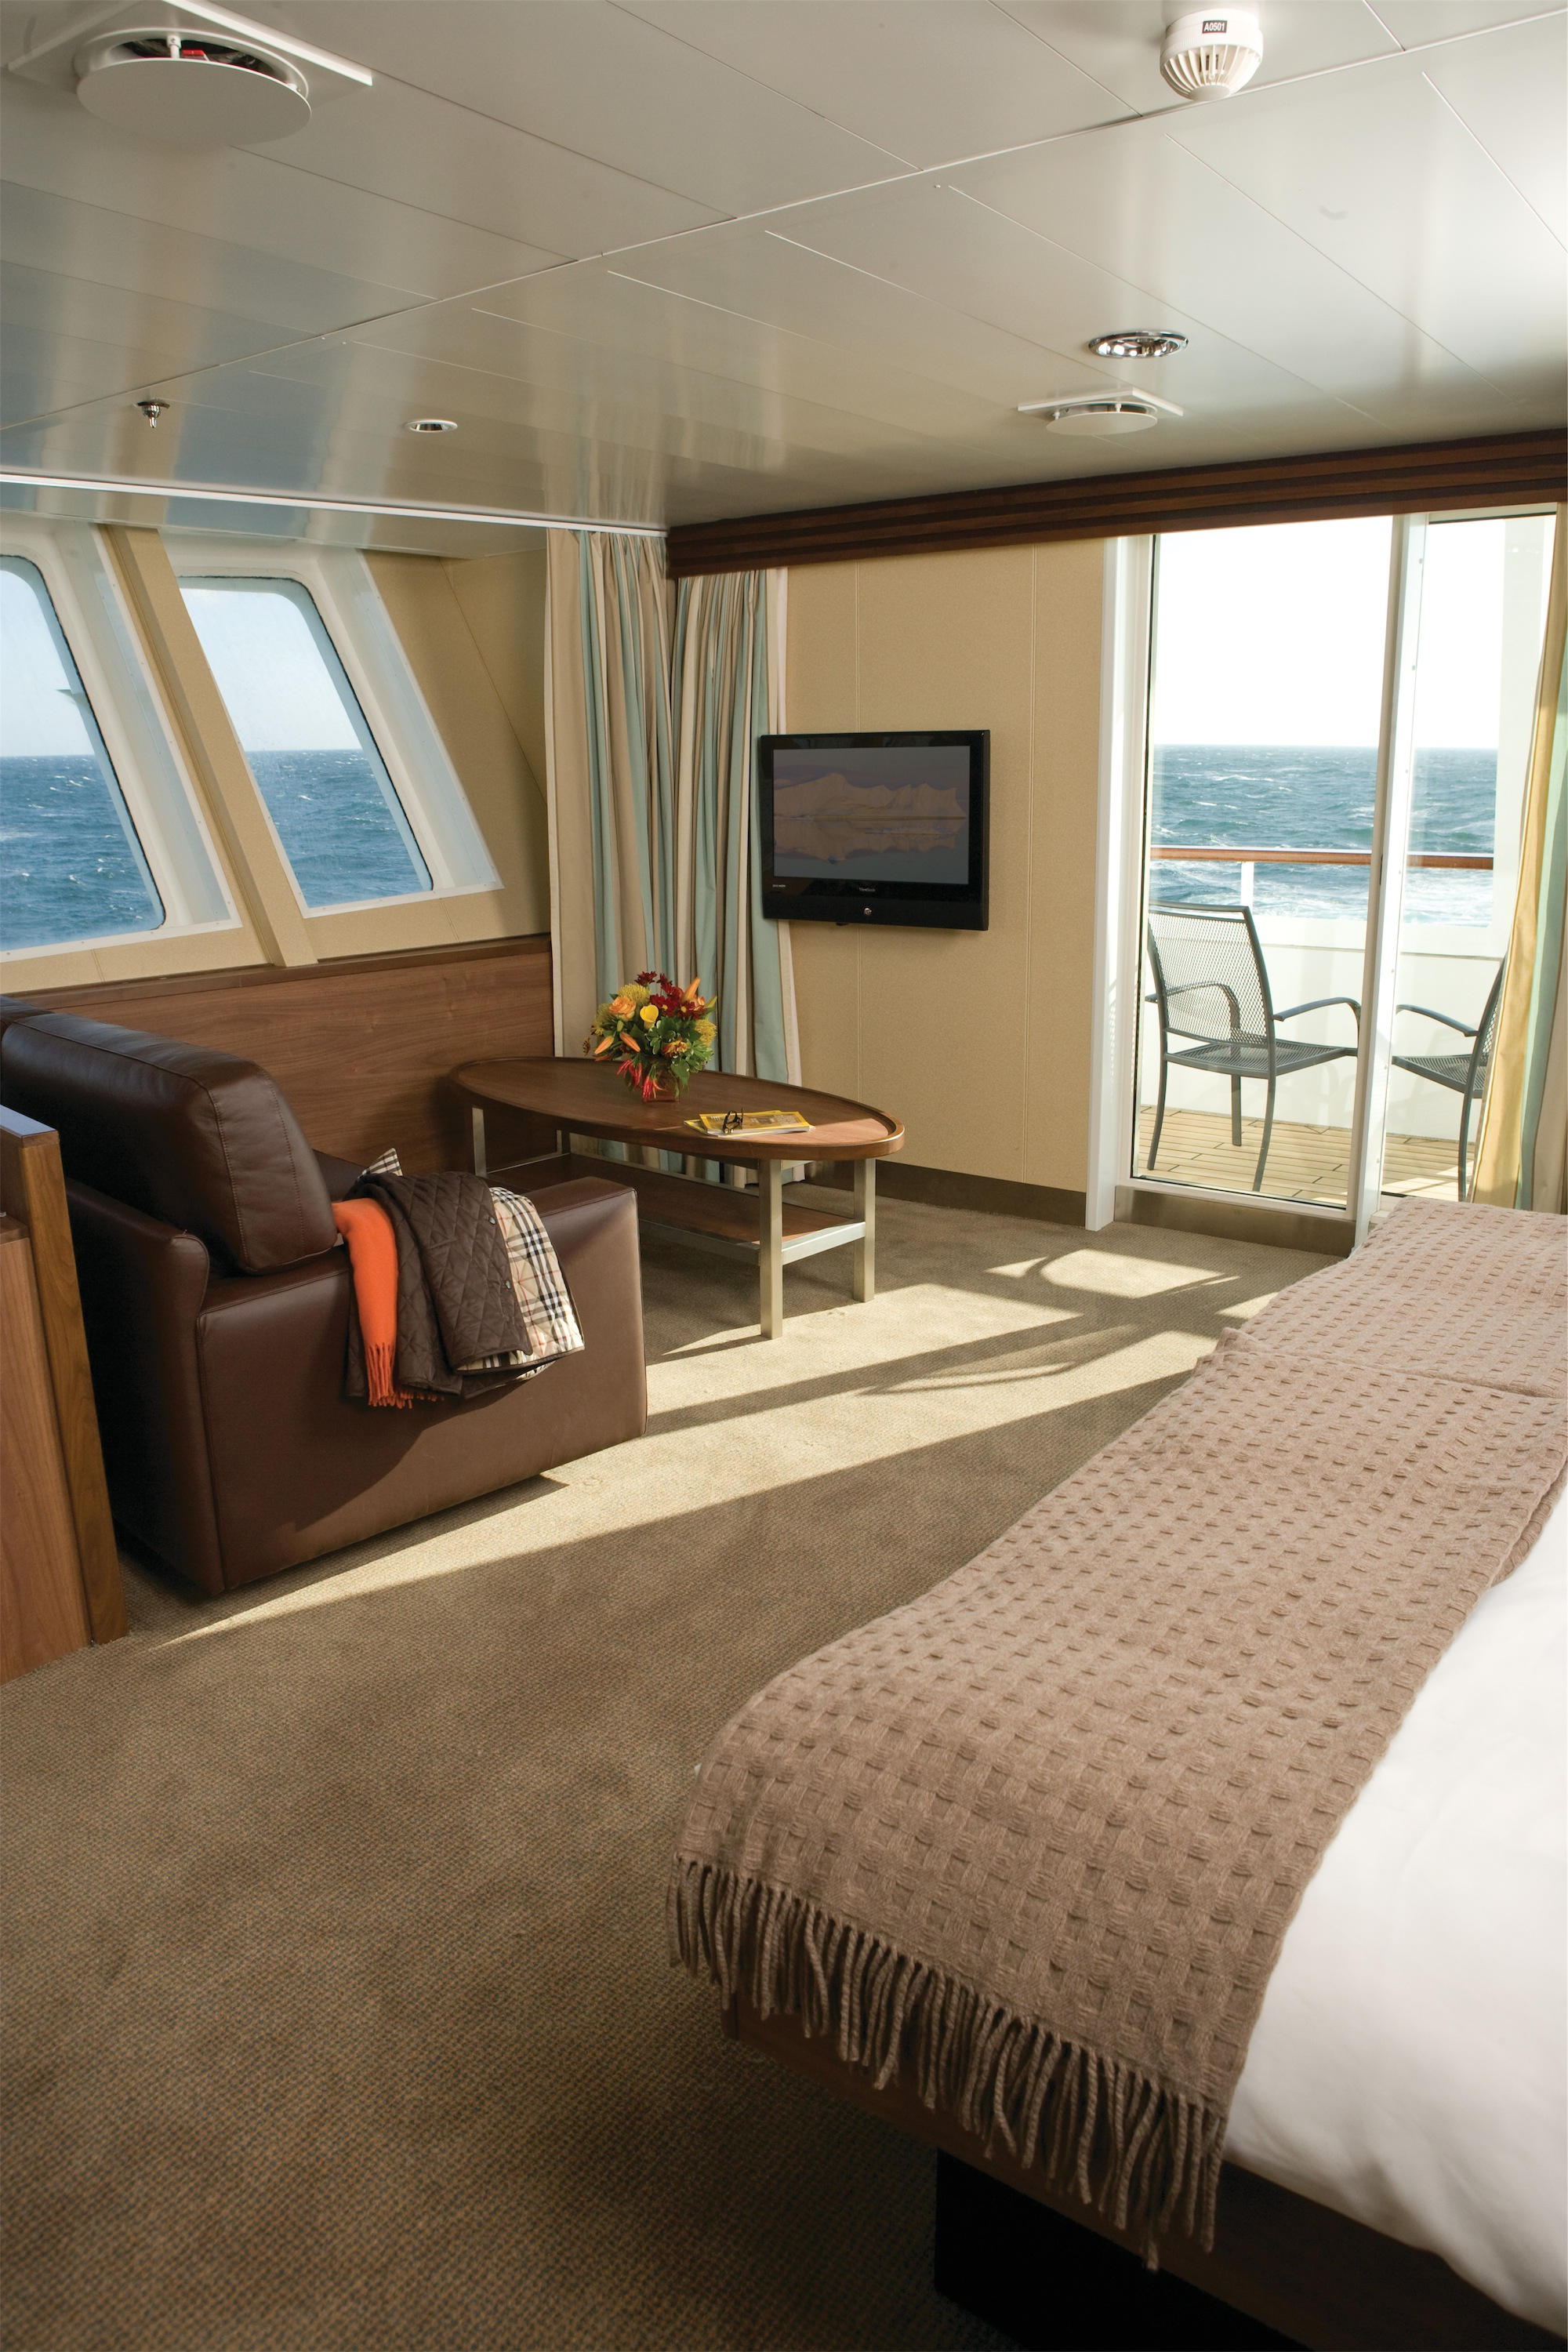 Lindblad Expeditions National Geographic Explorer Accommodation Category 7 Suite with Balcony.jpg